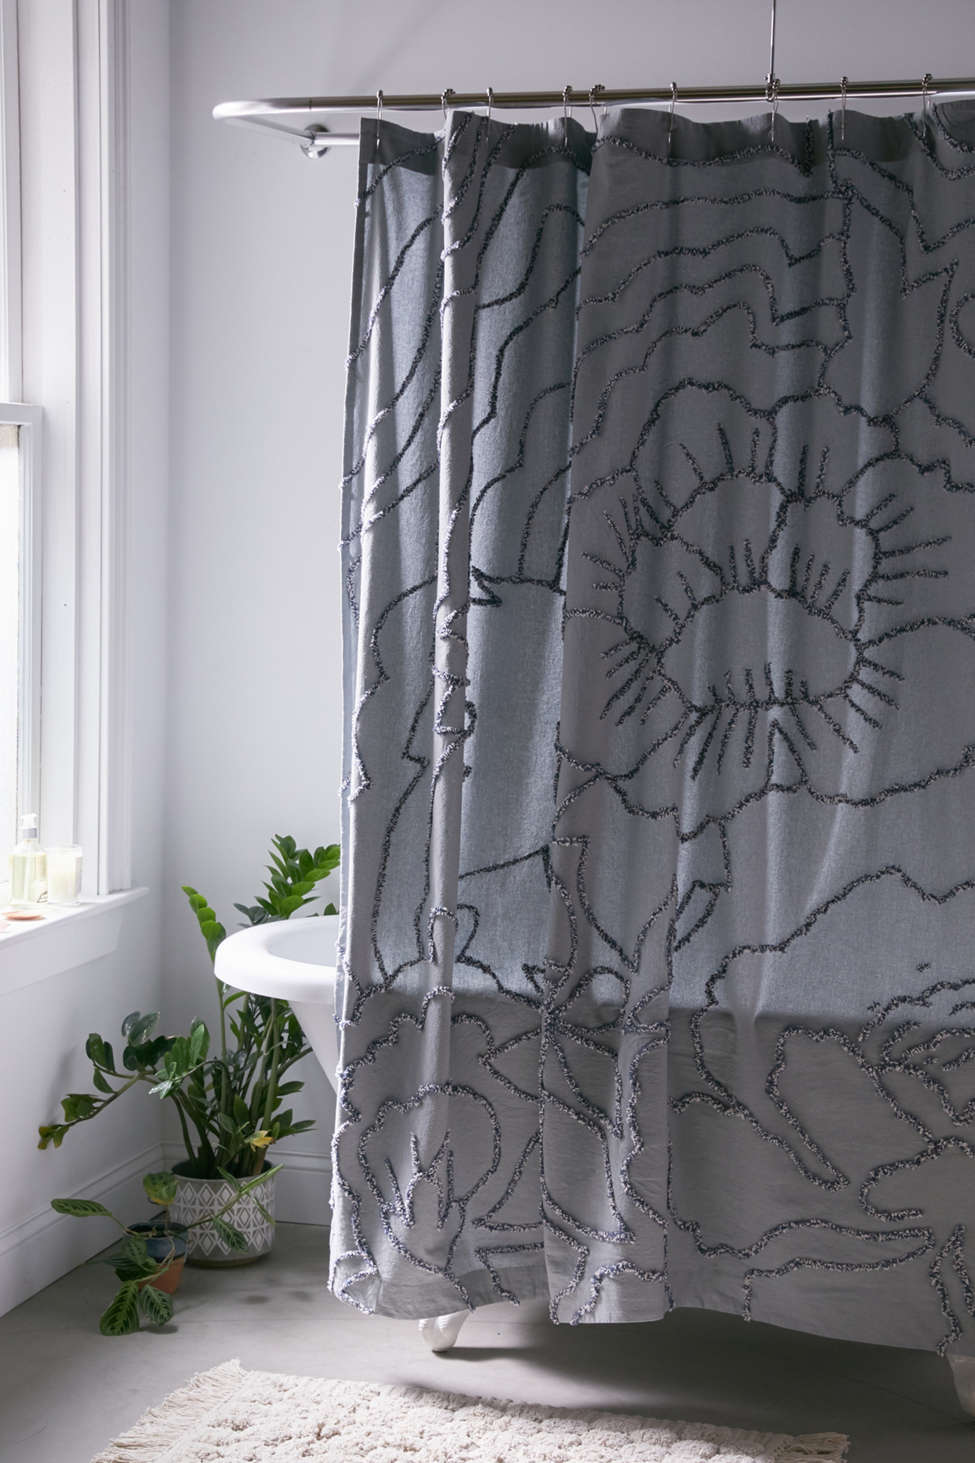 Slide View: 1: Margot Tufted Floral Shower Curtain